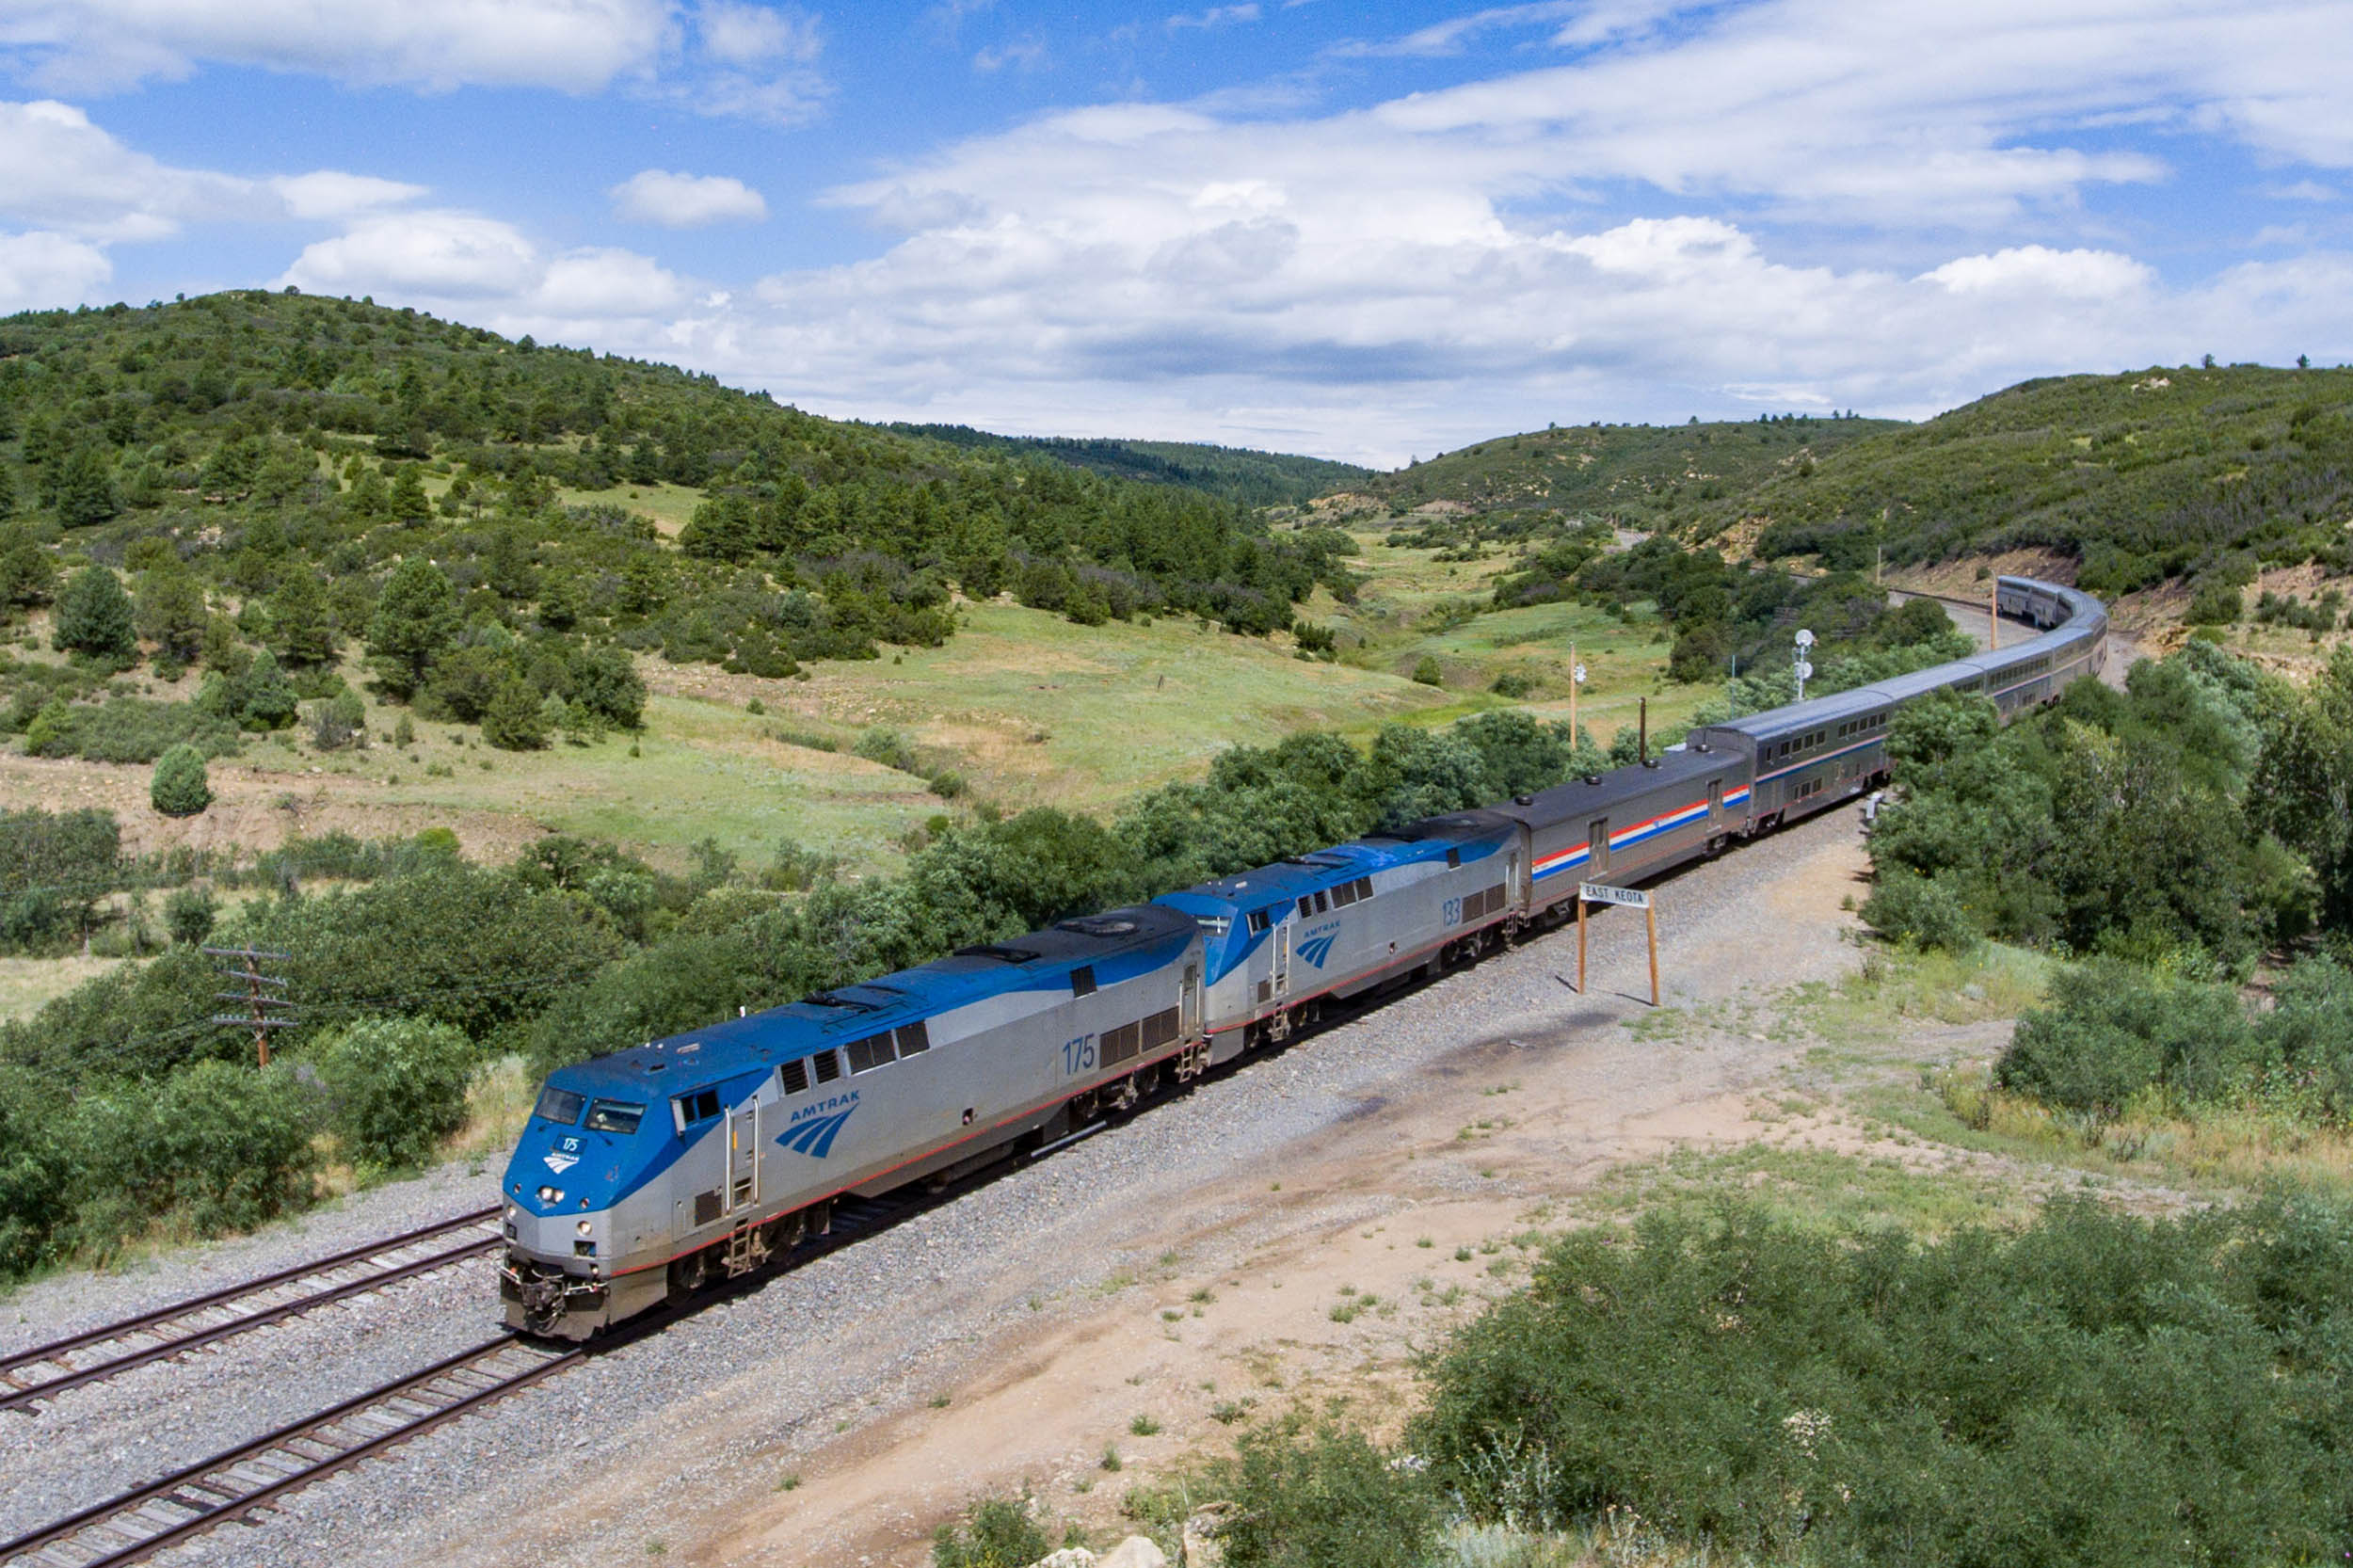 Southwest Chief Amtrak